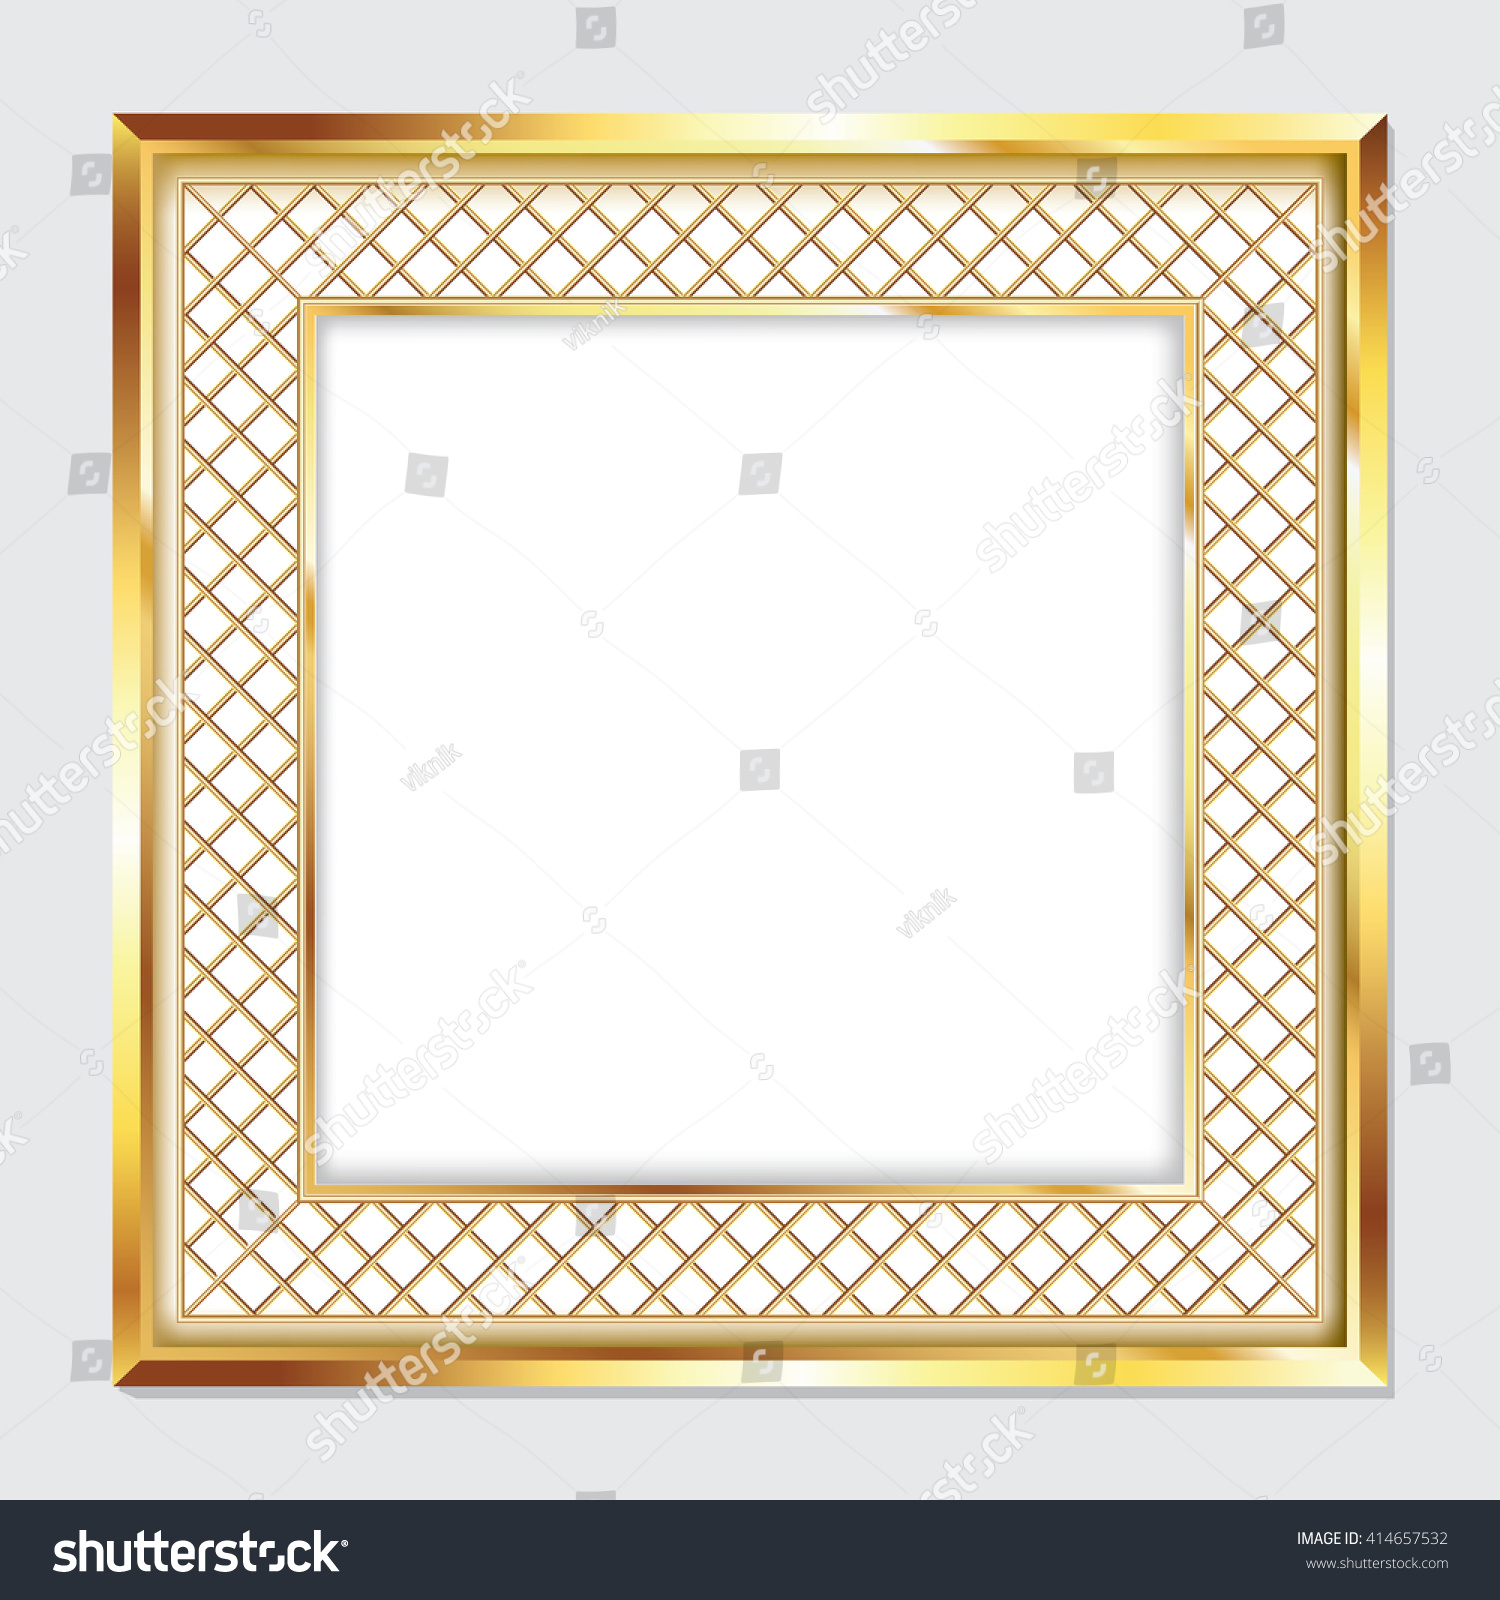 Square Gold Frame Pictures Images Stock Photo (Photo, Vector ...